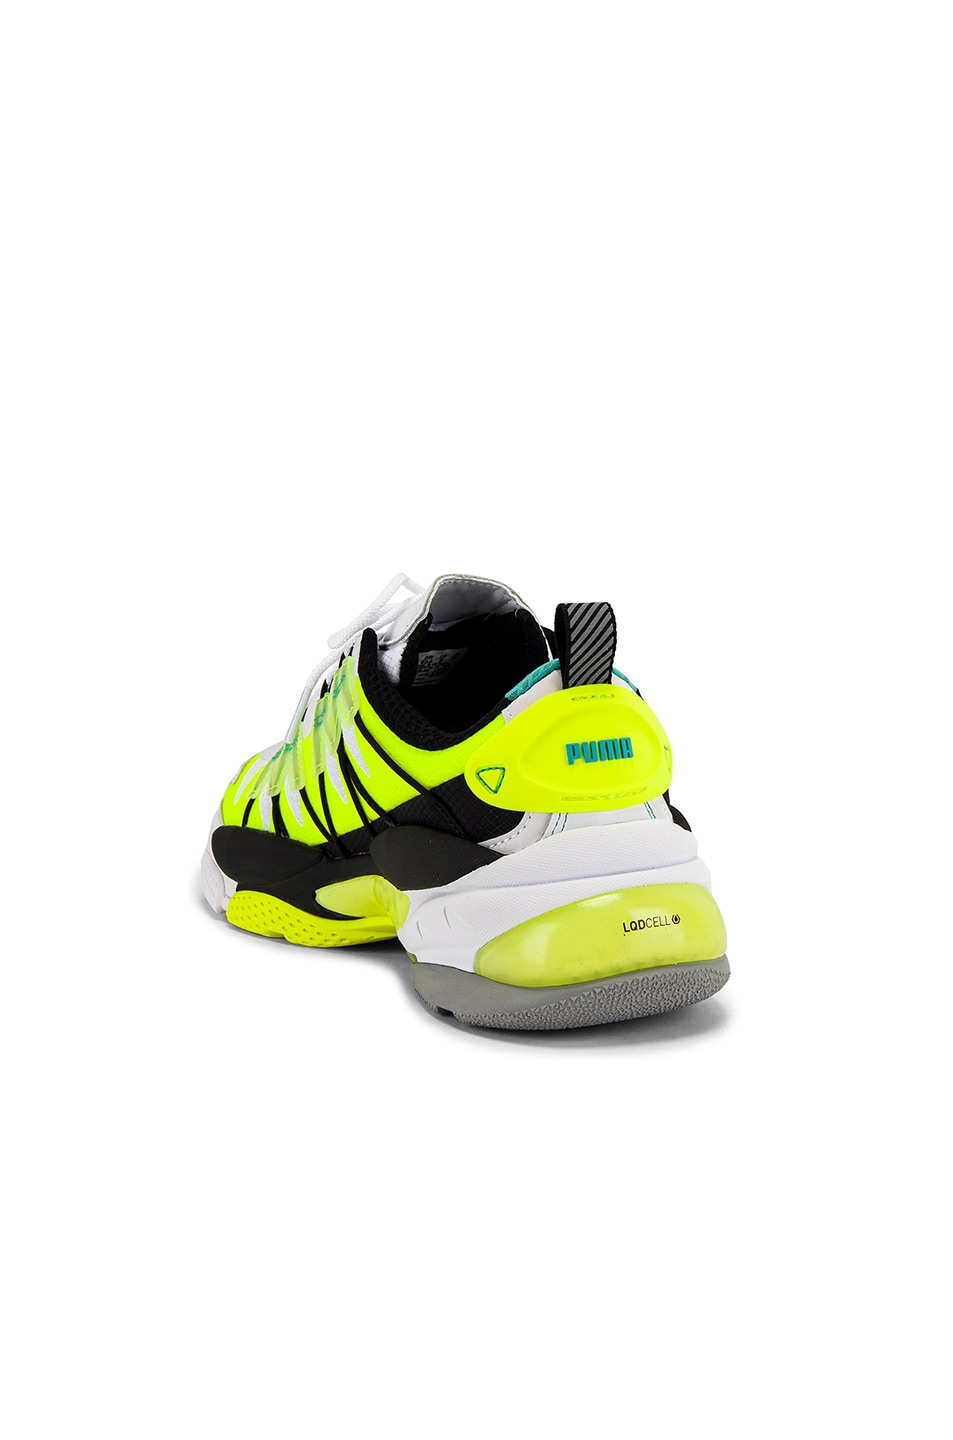 Image 3 of Puma Select LQD Cell Omega Lab in White & Yellow Alert